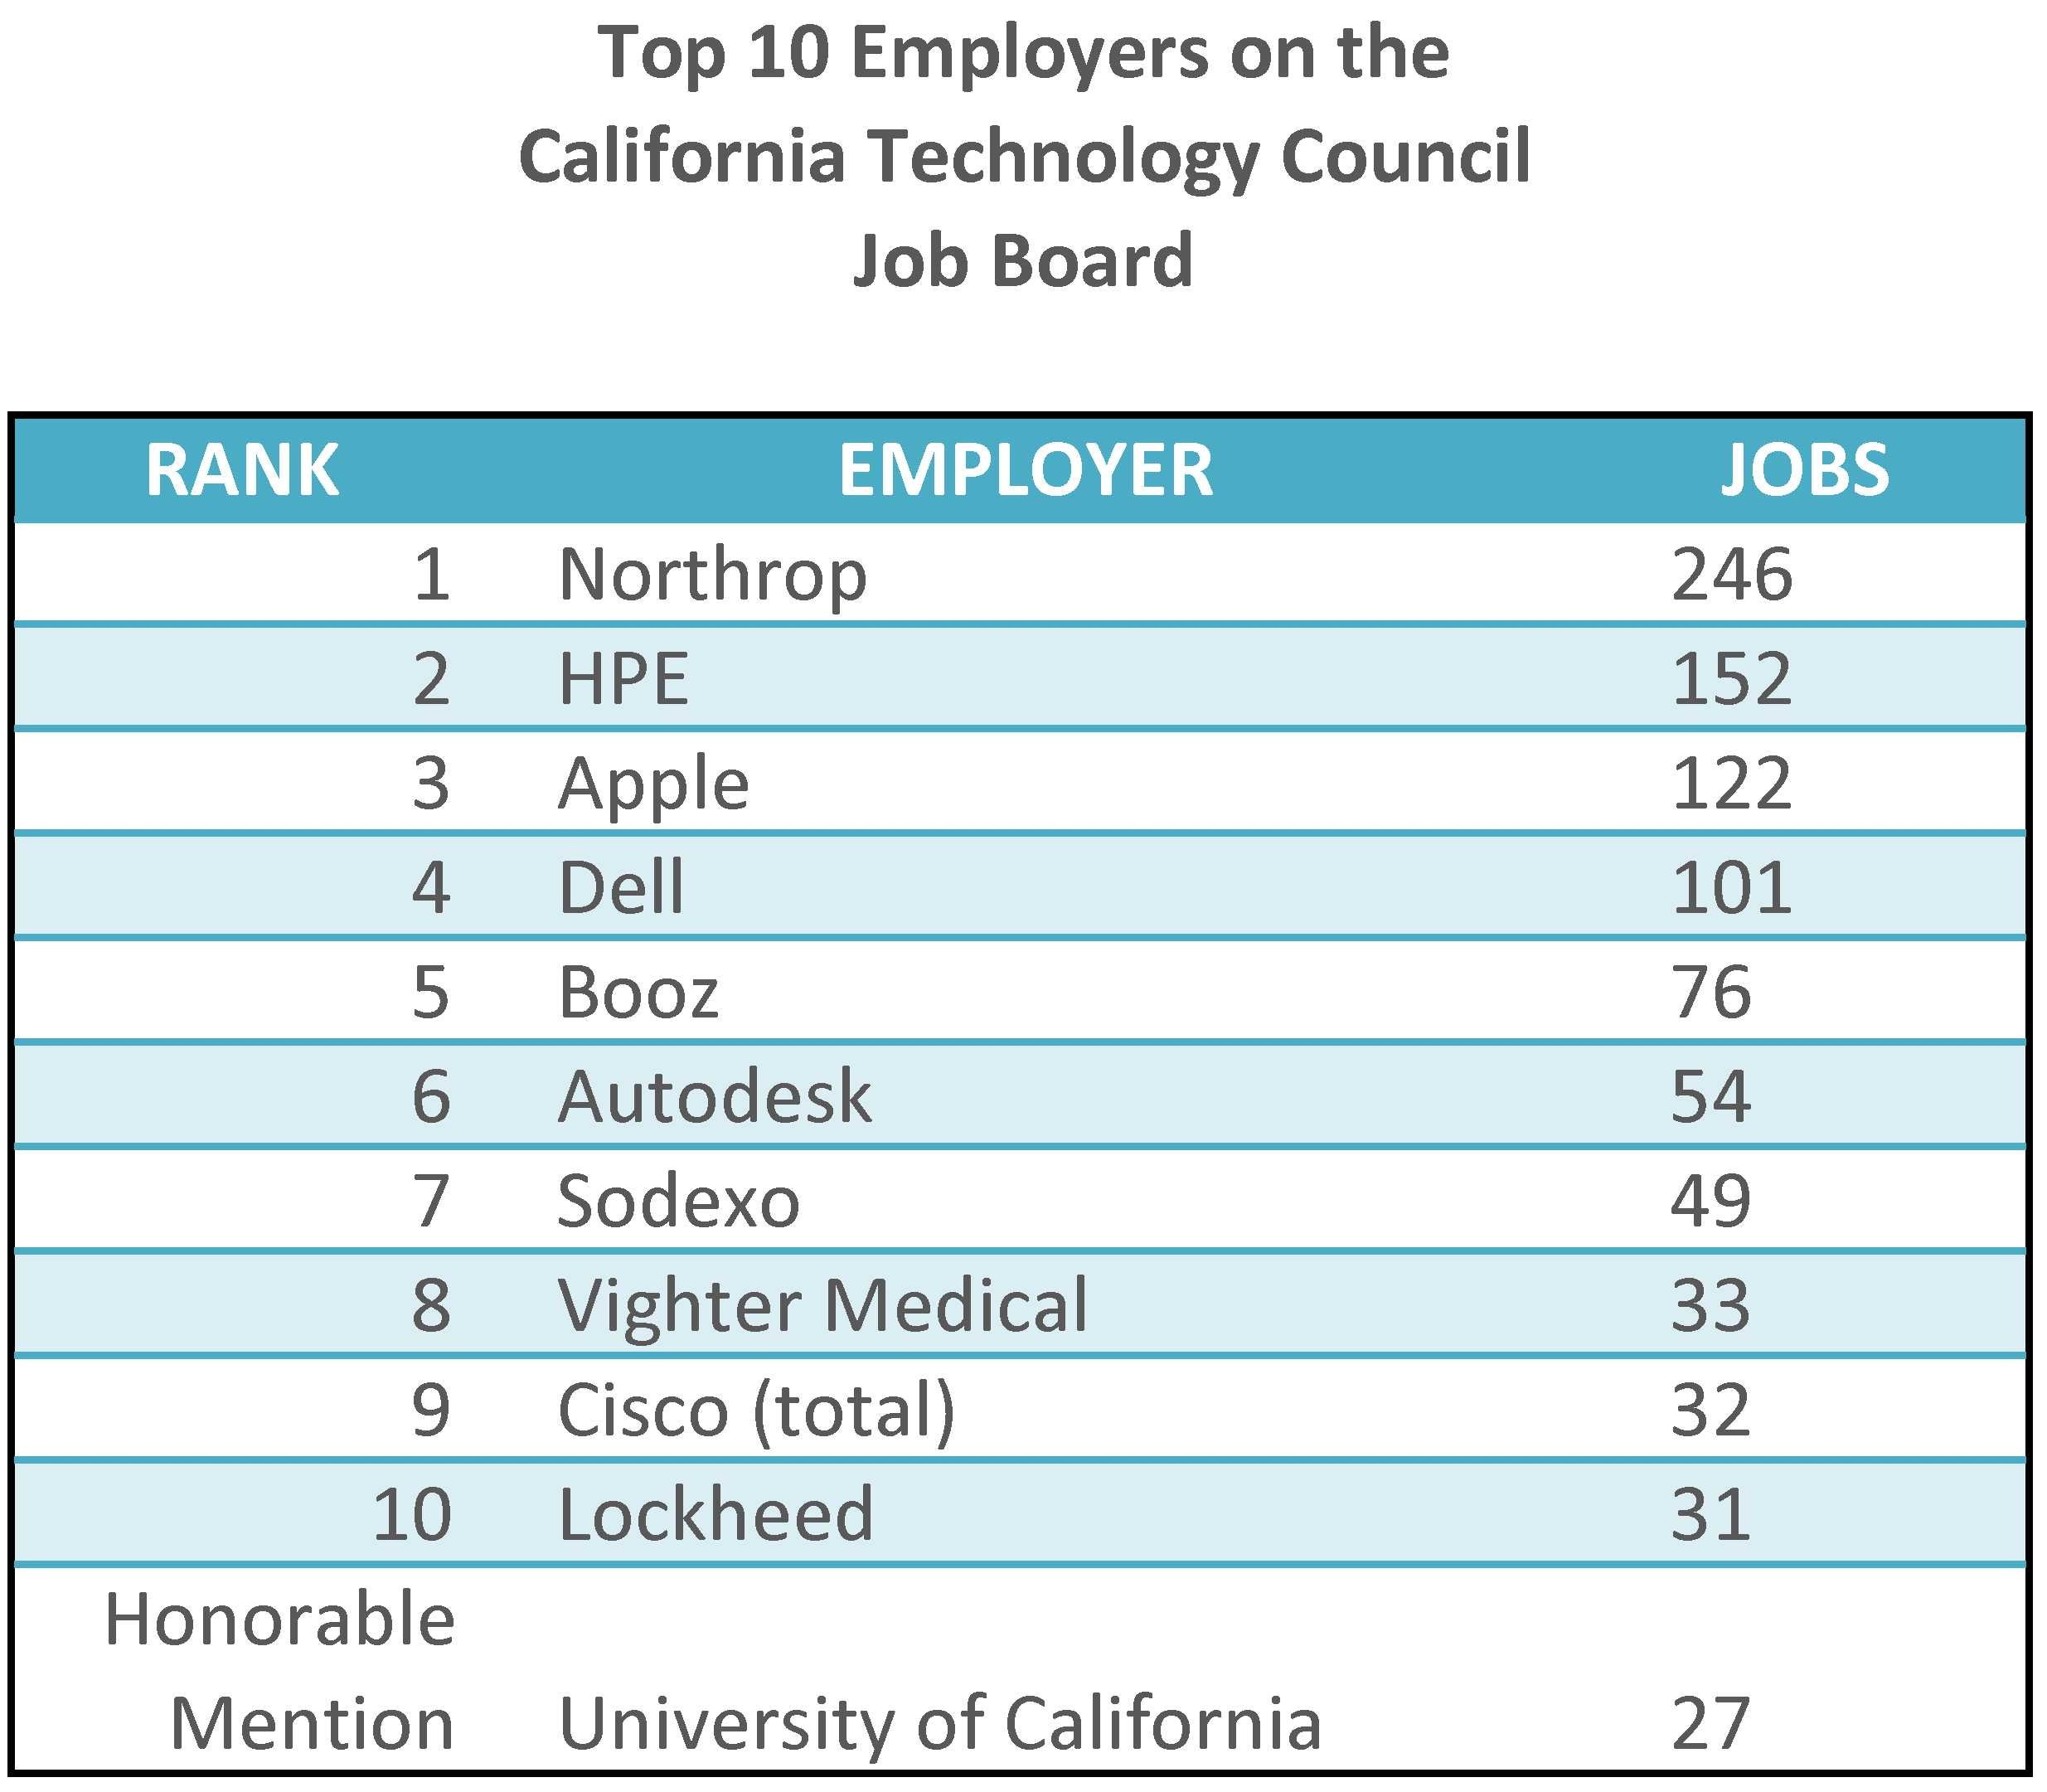 Top job advertisers on the CTC Job Board as of March 23rd.